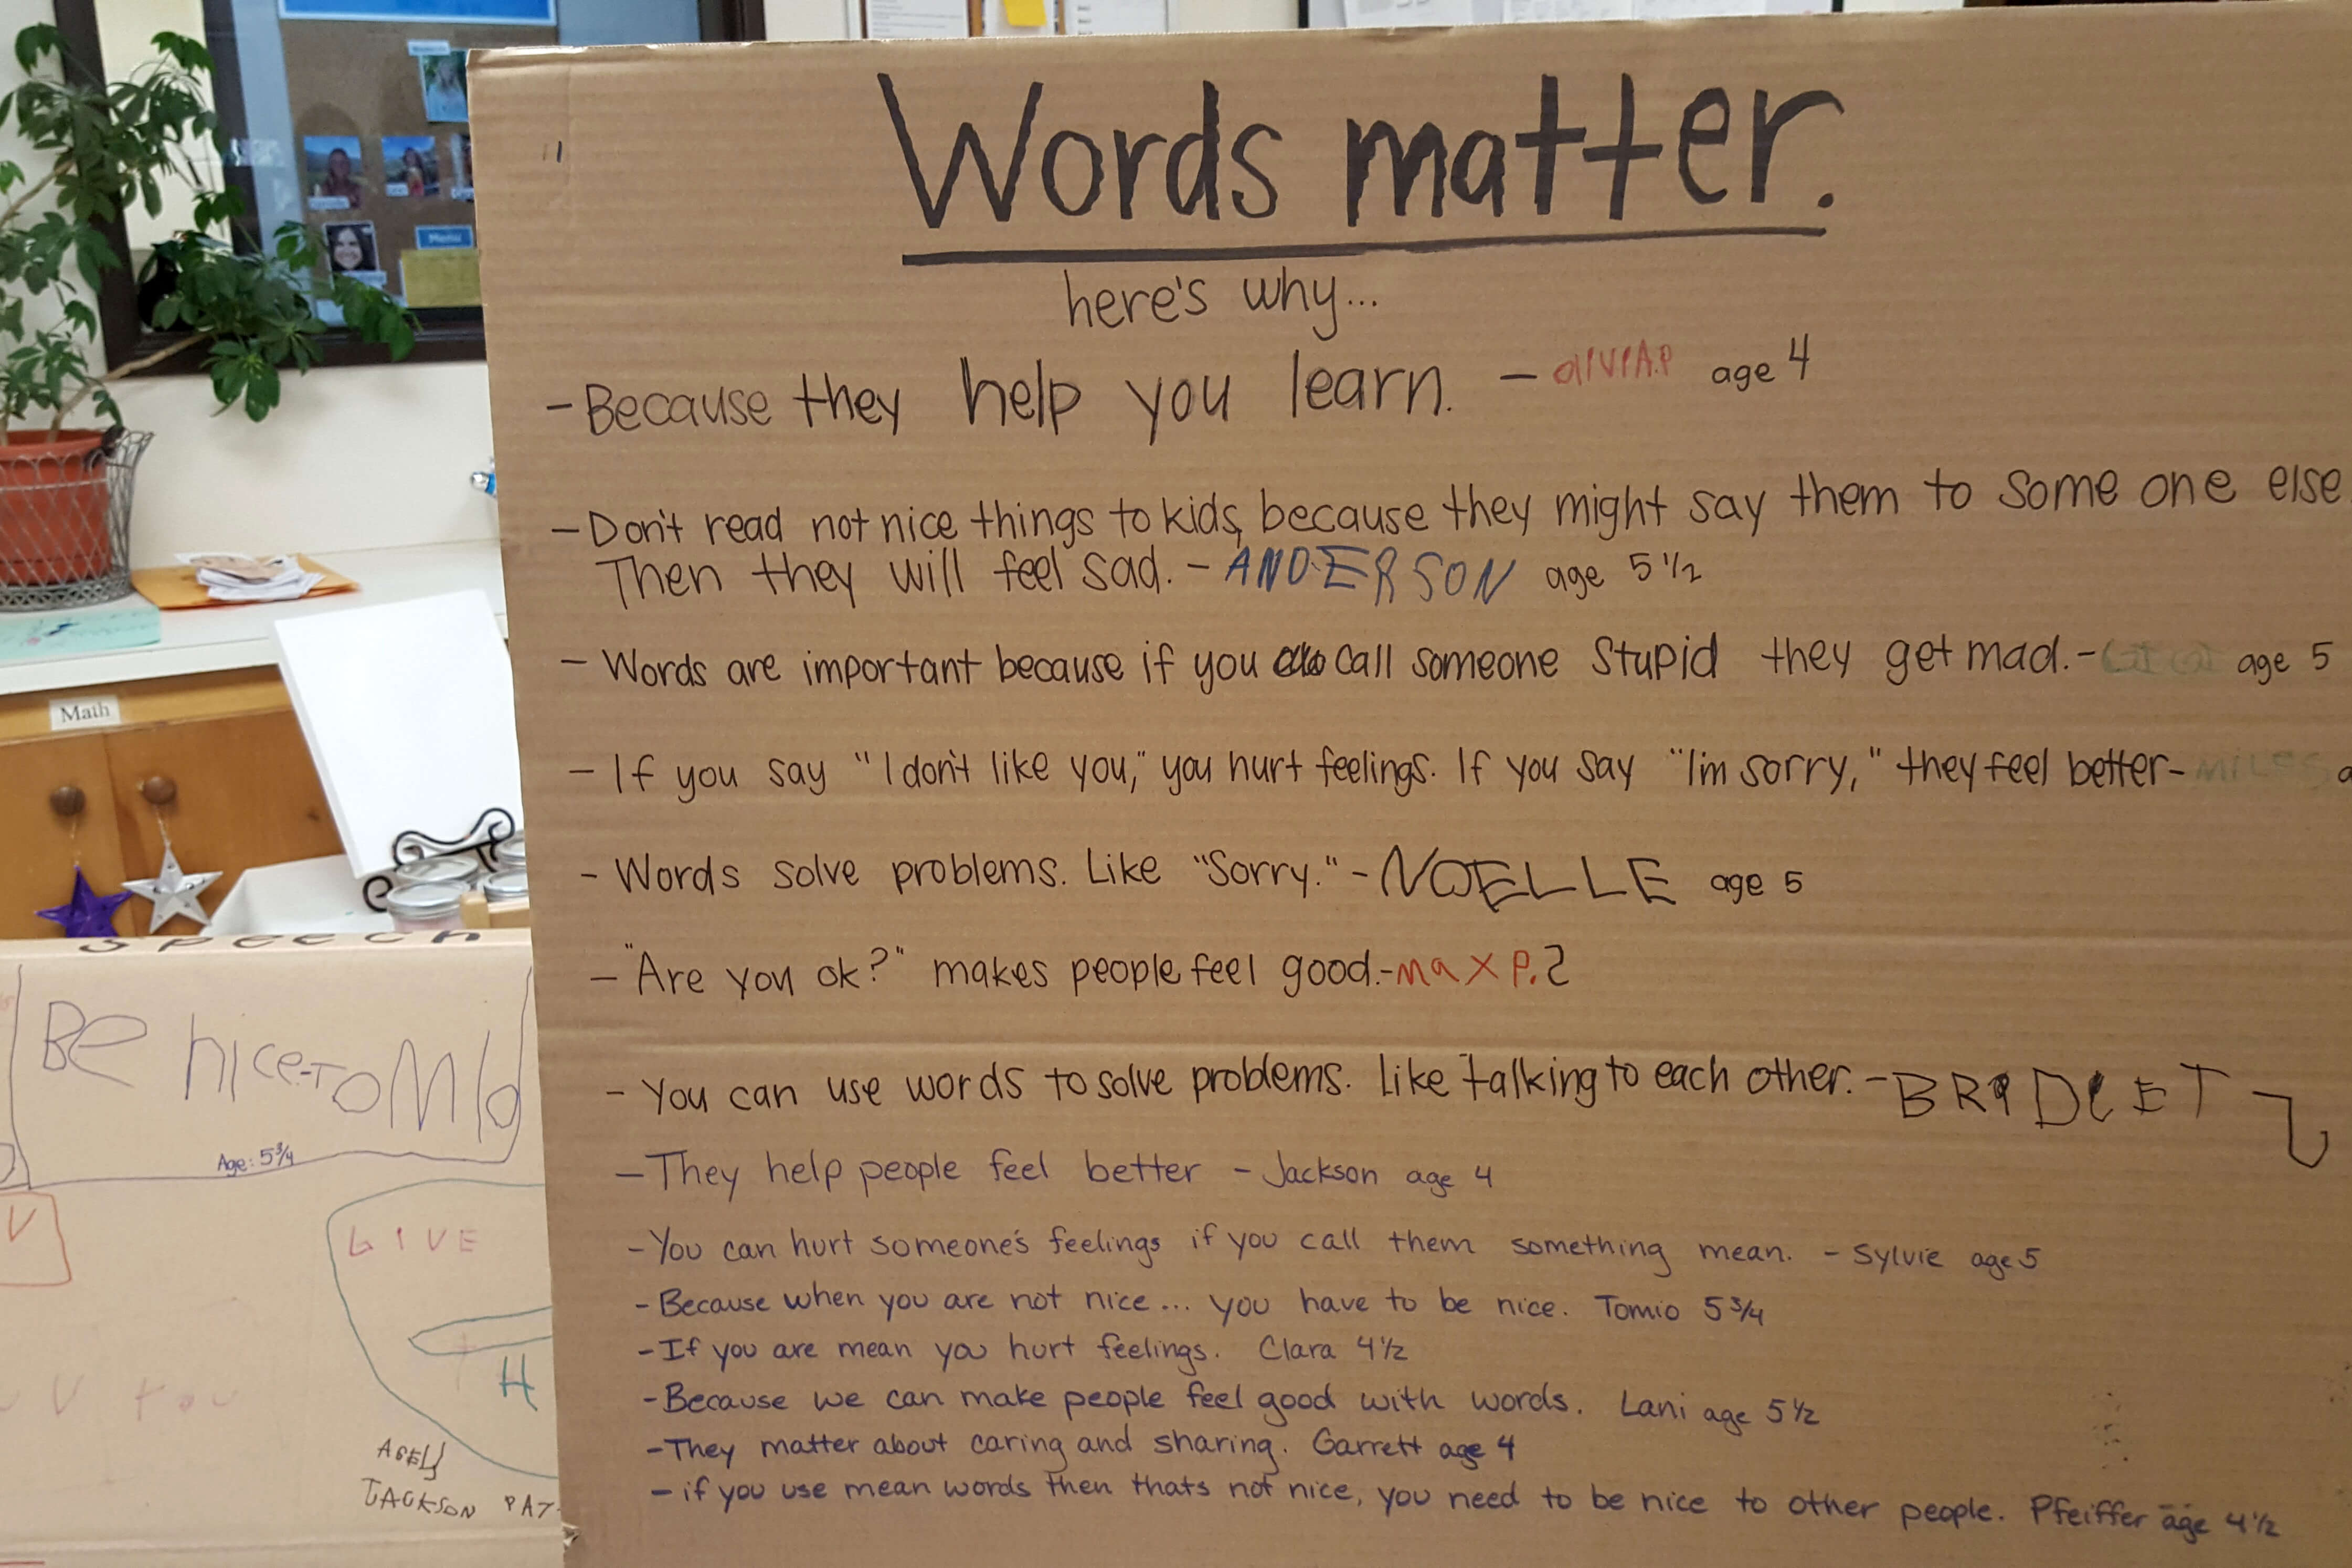 Words Matter display created by children at the Orfalea Family & ASI Children's Center